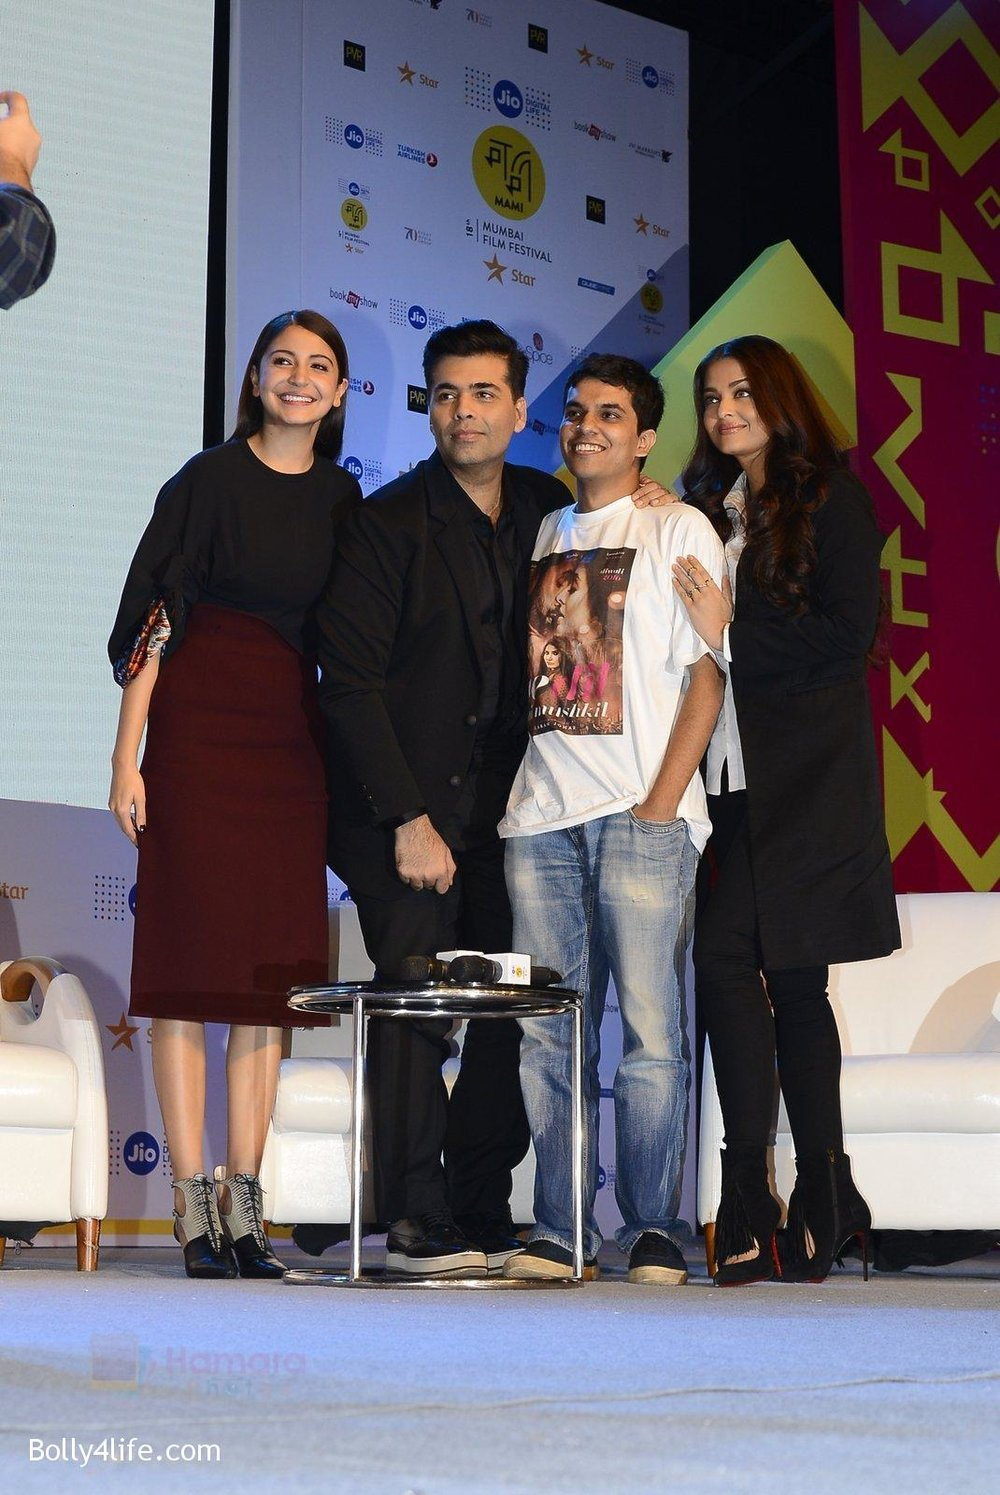 Anushka-Sharma-Aishwarya-Rai-Karan-Johar-talk-about-their-movie-Ae-Dil-Hai-Mushkil-during-the-Jio-MAMI-18th-Mumbai-Film-Festival-with-star-on-21st-Oct-2016-7.jpg